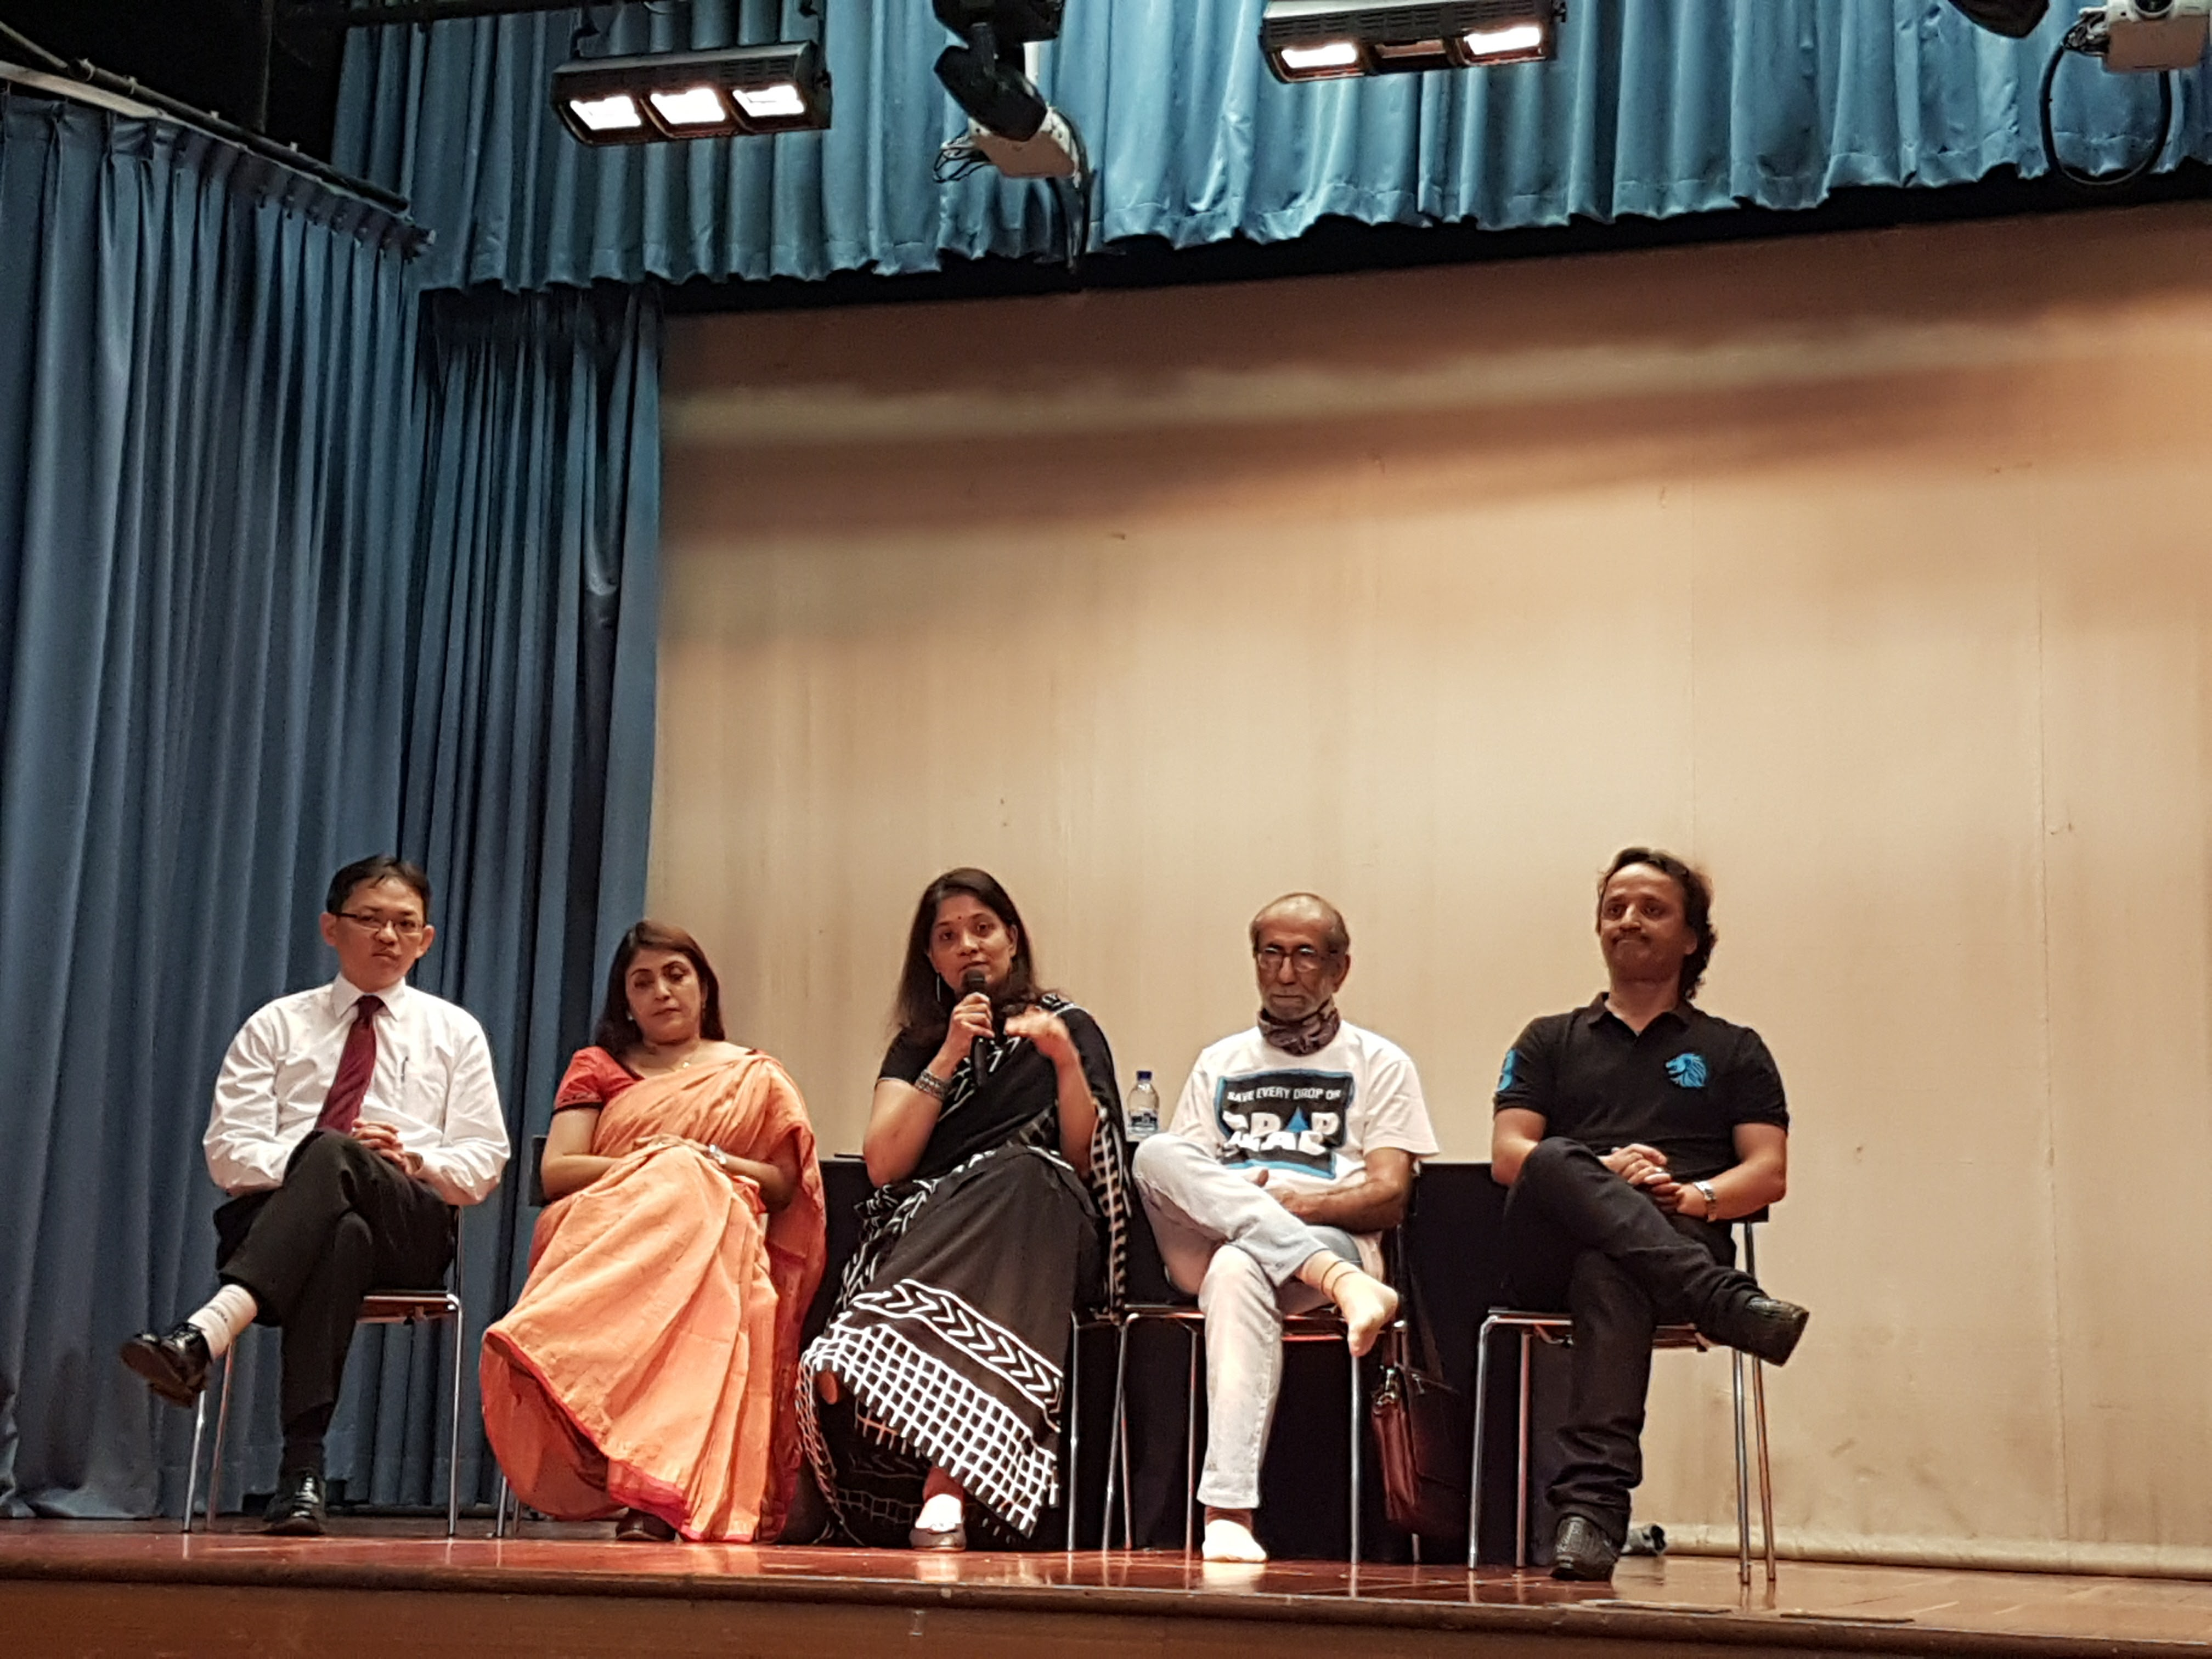 Panel discussion during Prerna award function.